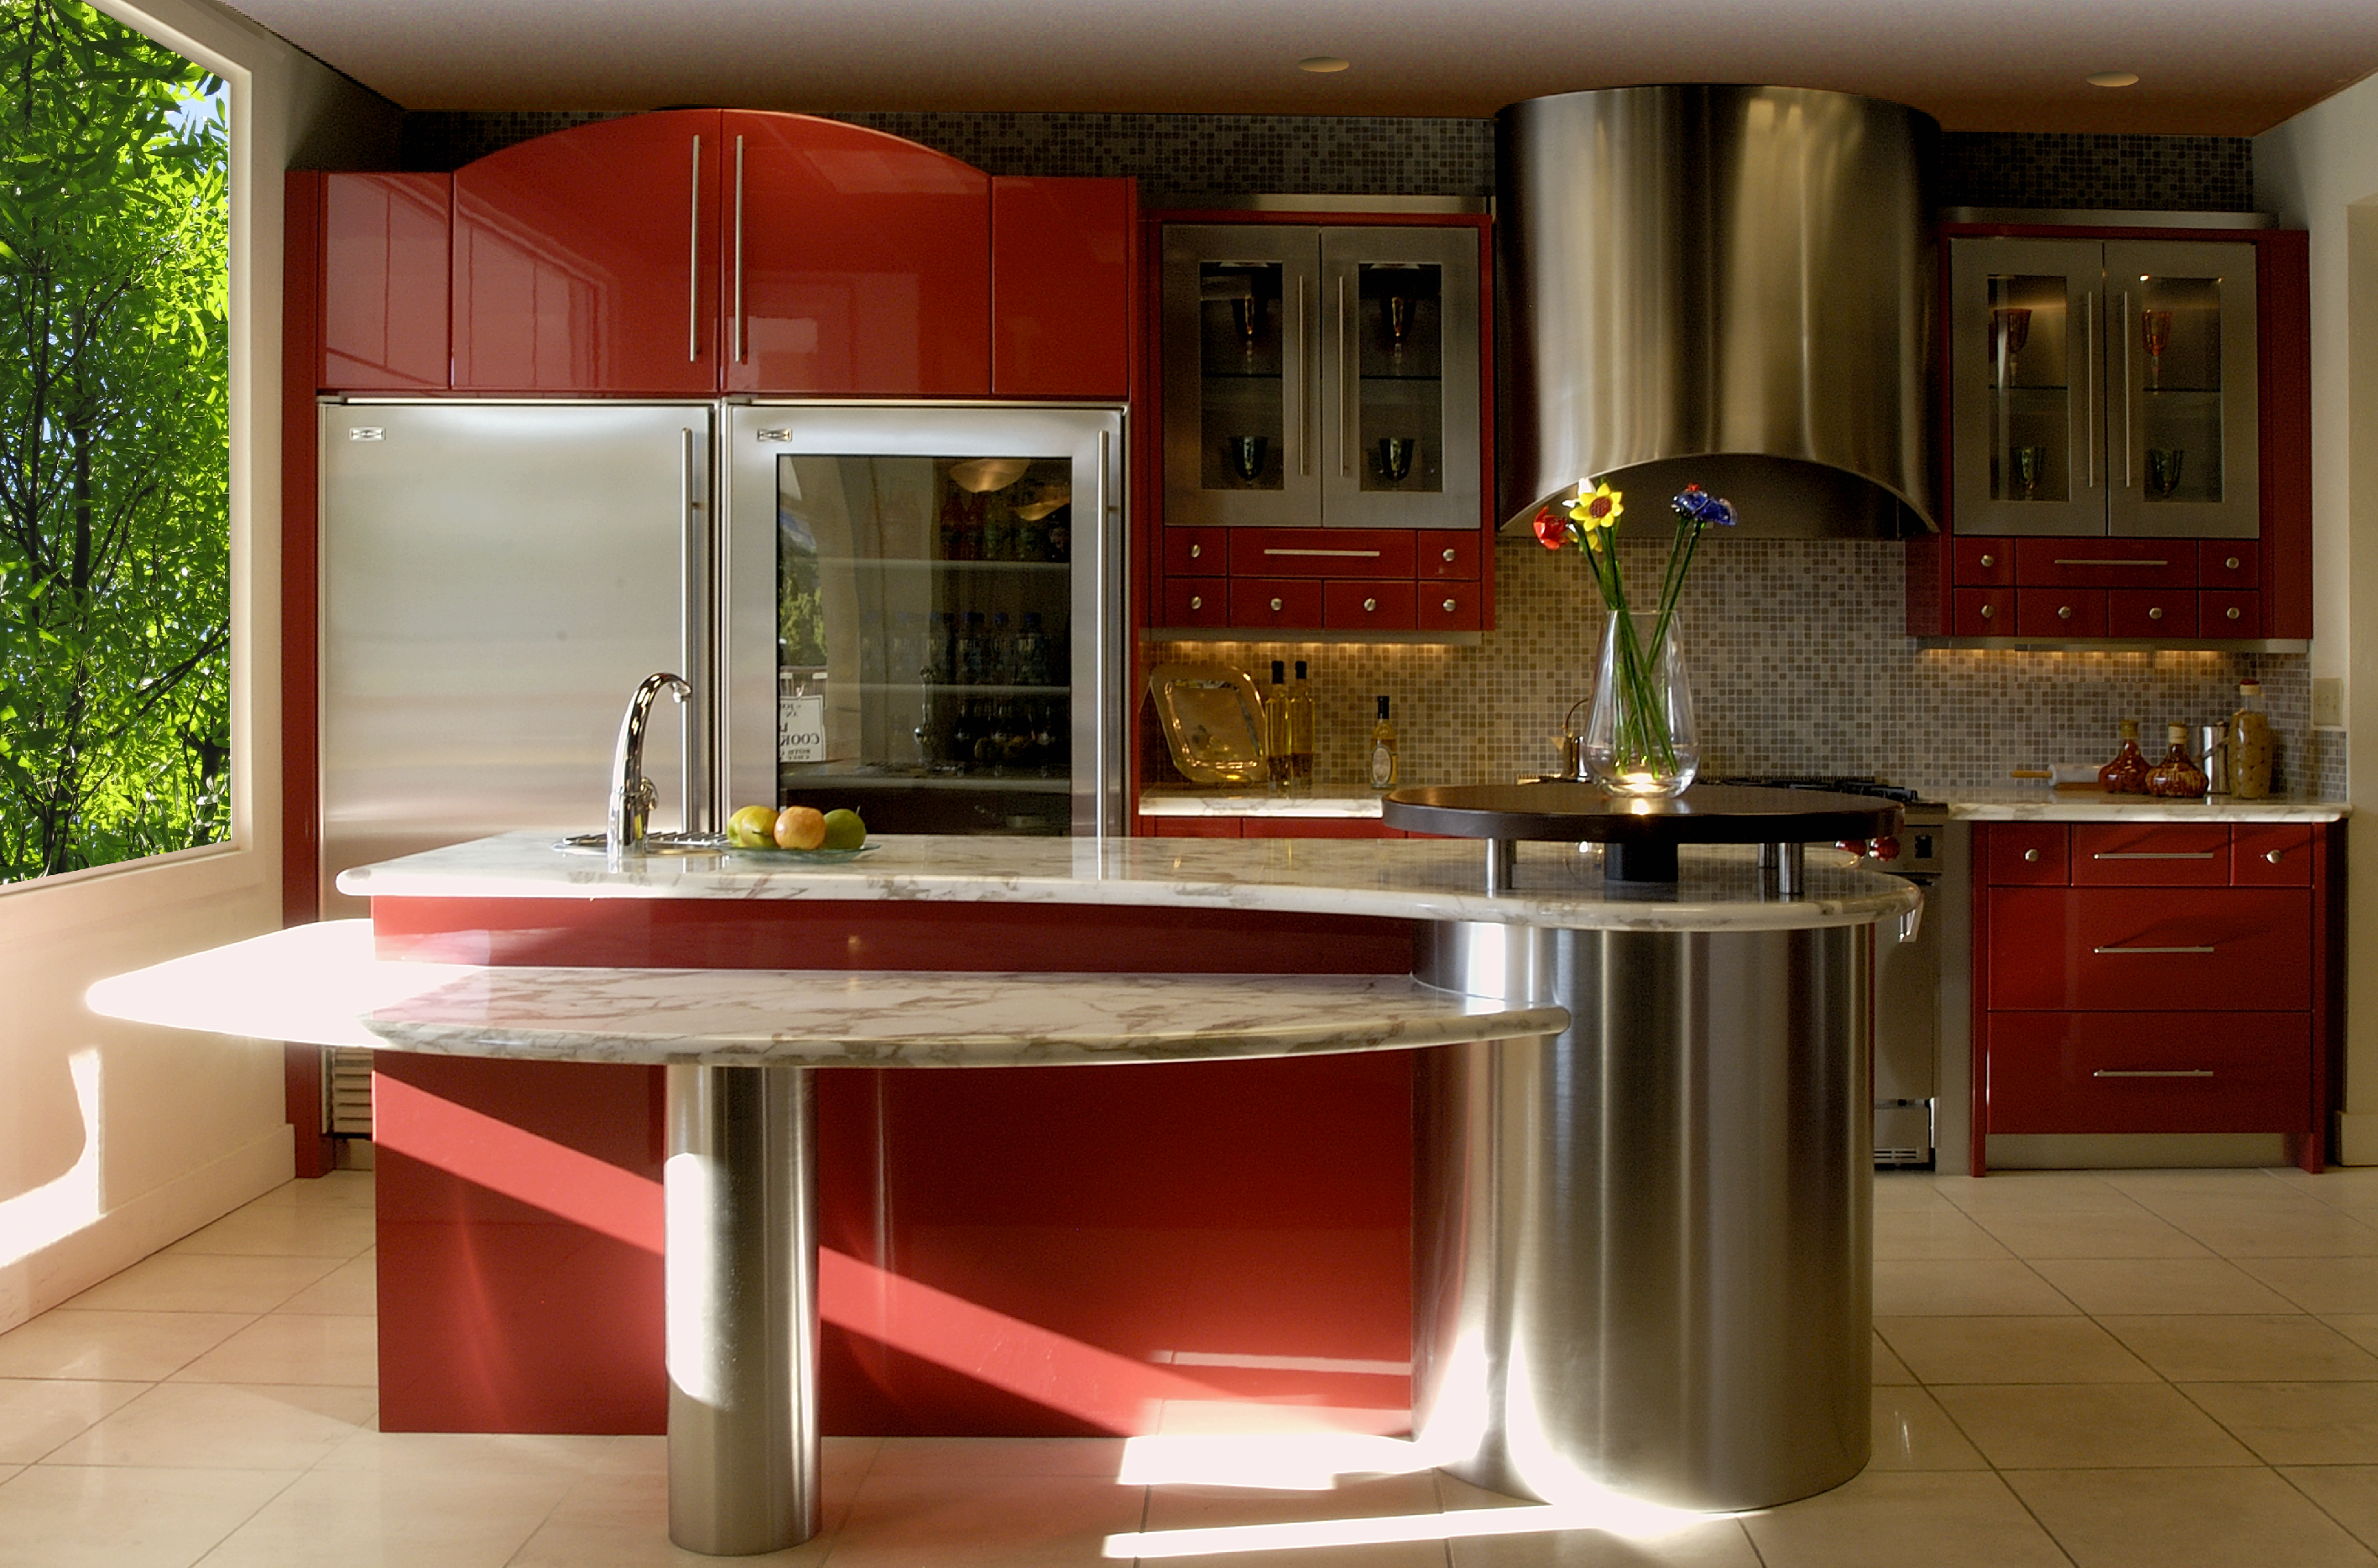 Contemporary Kitchen Cabinetry Pictures | Steve\'s Cabinetry Blog